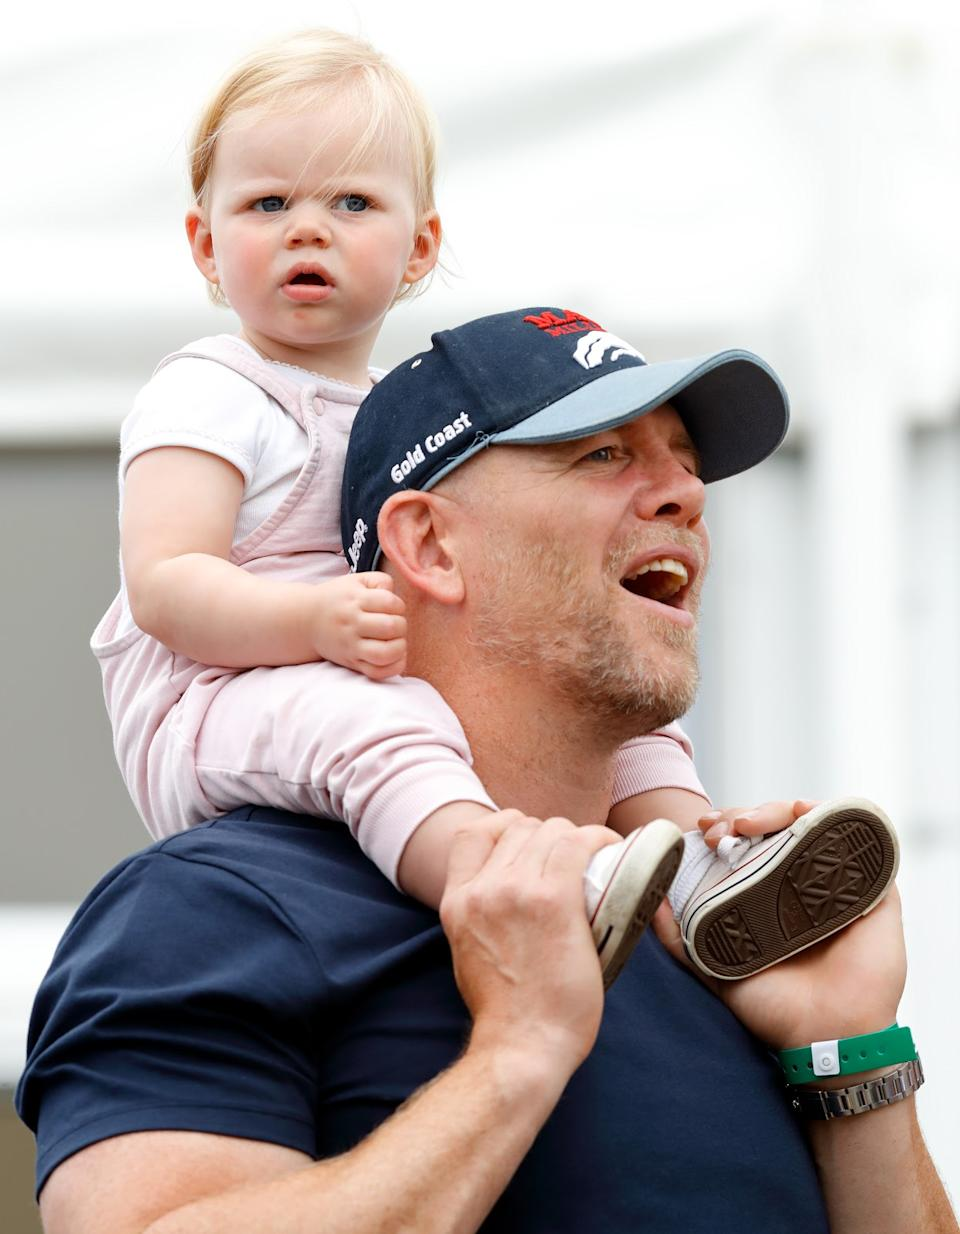 <p>Mike Tindall carries daughter Lena on his shoulders at the 2019 Festival of British Eventing at Gatcombe Park. (Max Mumby/Indigo/Getty Images)</p>